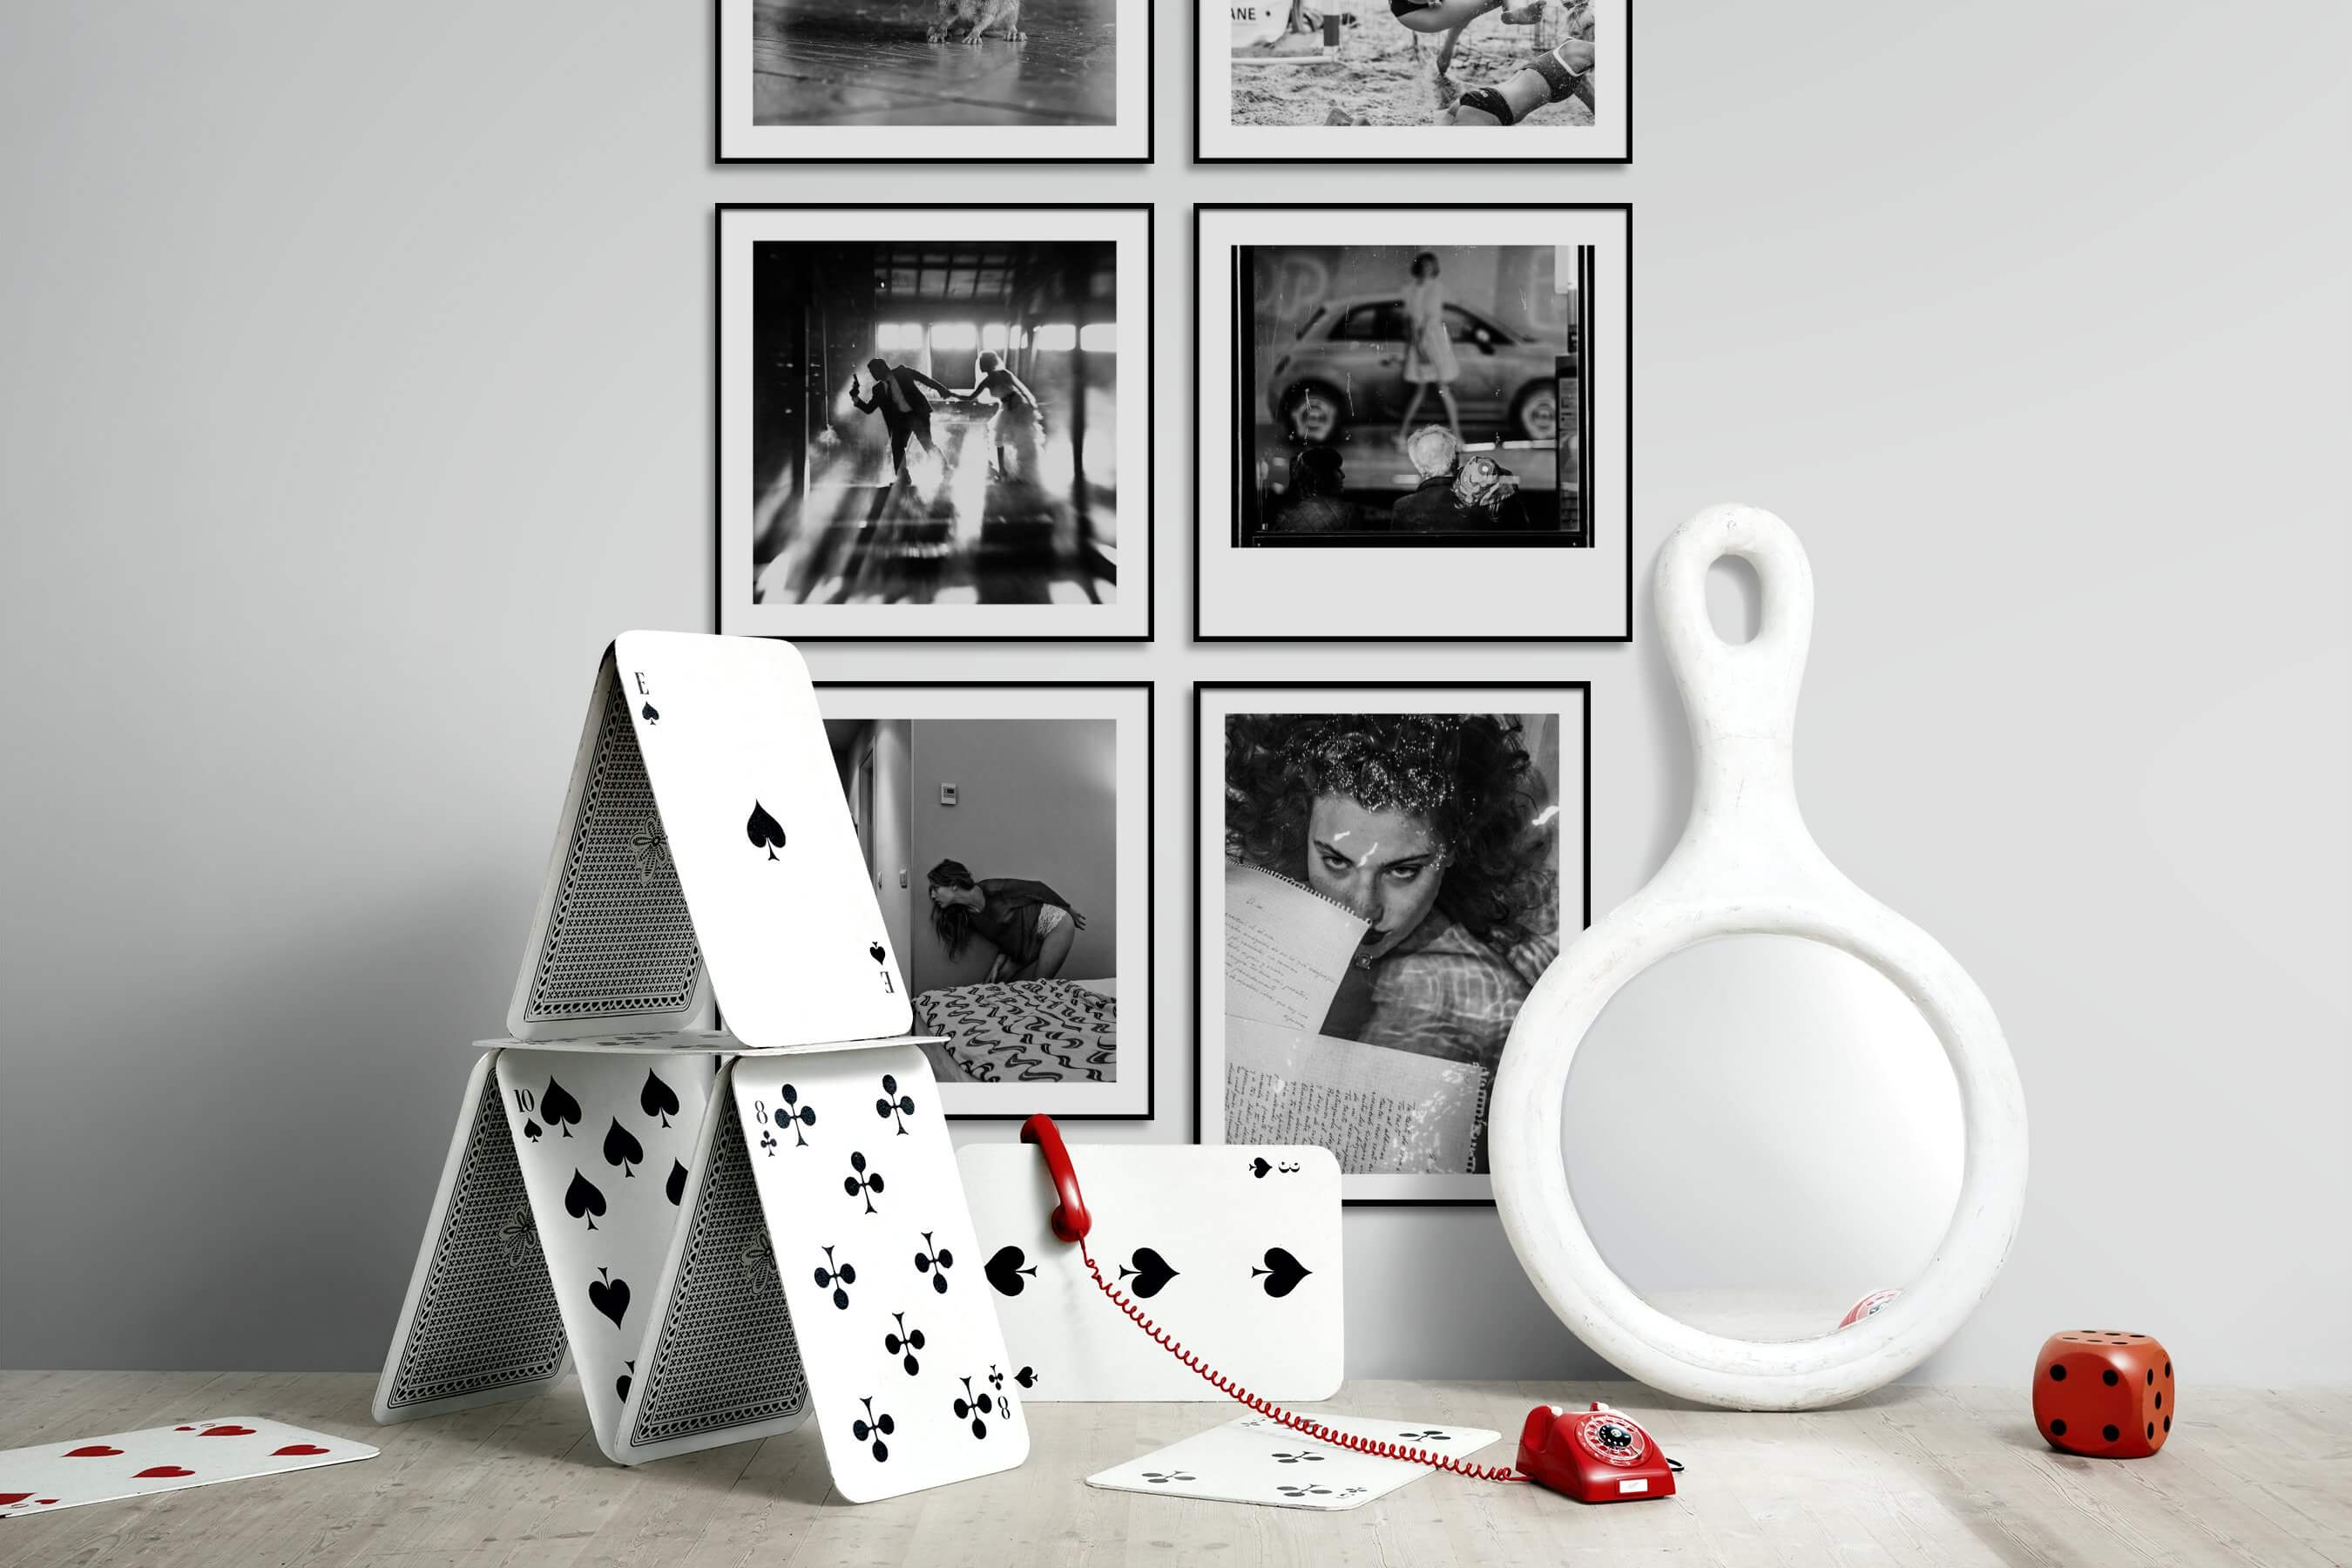 Gallery wall idea with six framed pictures arranged on a wall depicting Black & White, Animals, Beach & Water, Artsy, and City Life